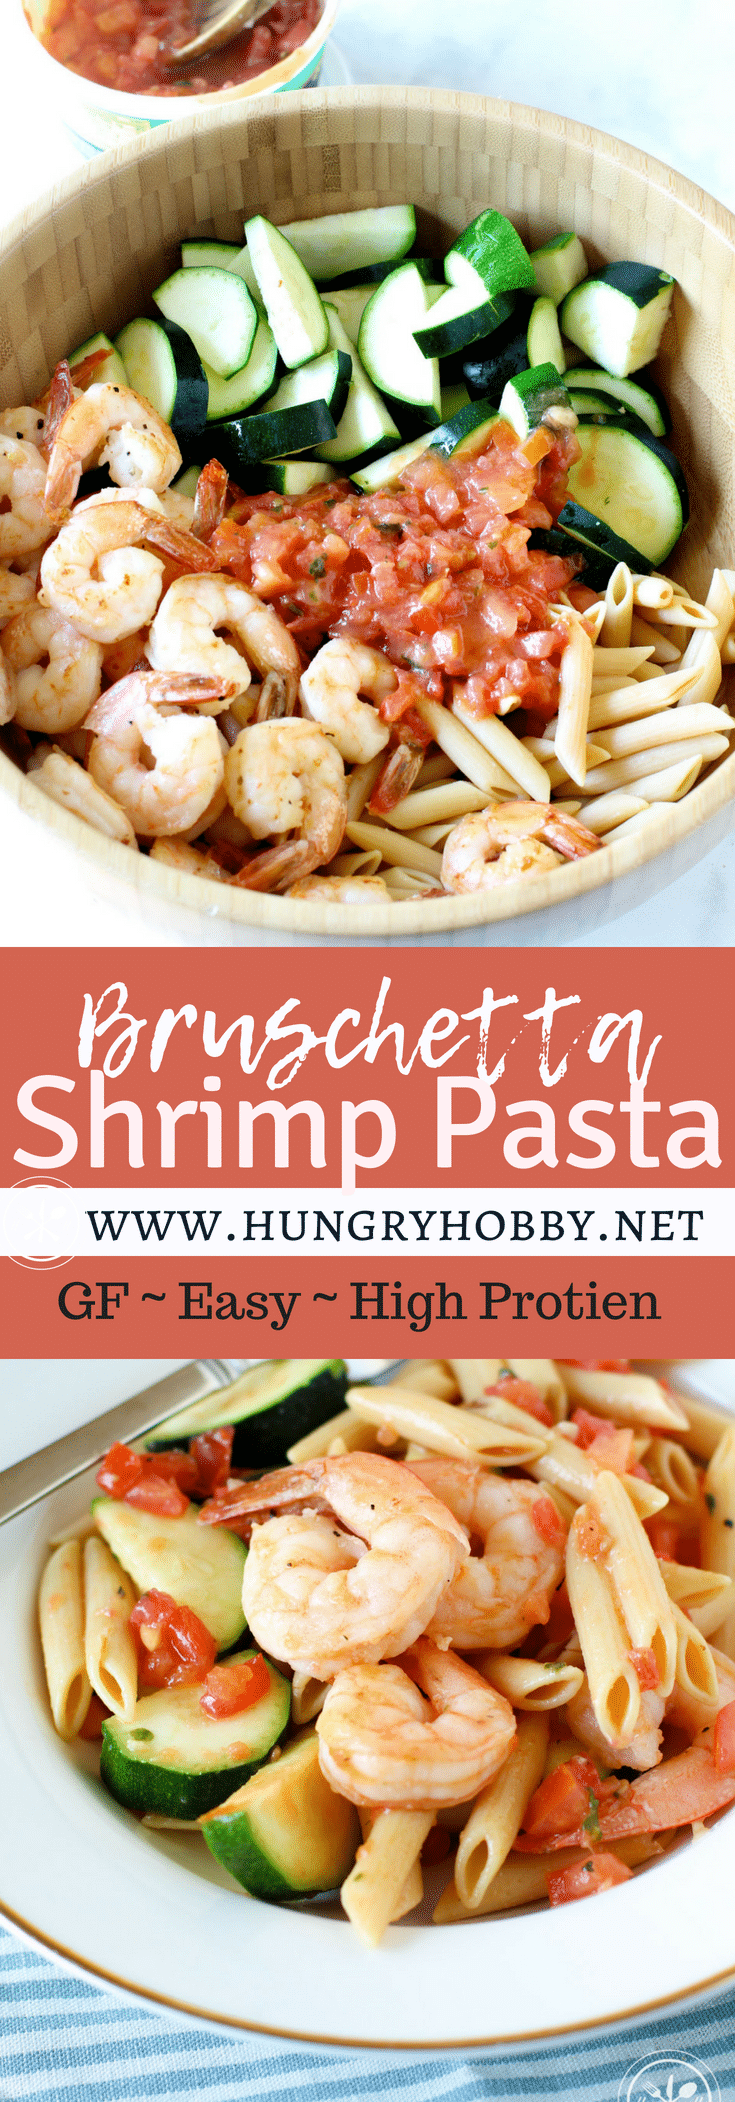 The easiest most delicious pasta salad you will ever make!  This bruschetta shrimp pasta is a filling healthy dinner that can be eaten hot or cold! #glutenfree #dairyfree #hungryhobby #healthydinner #dinner #chickpeapasta